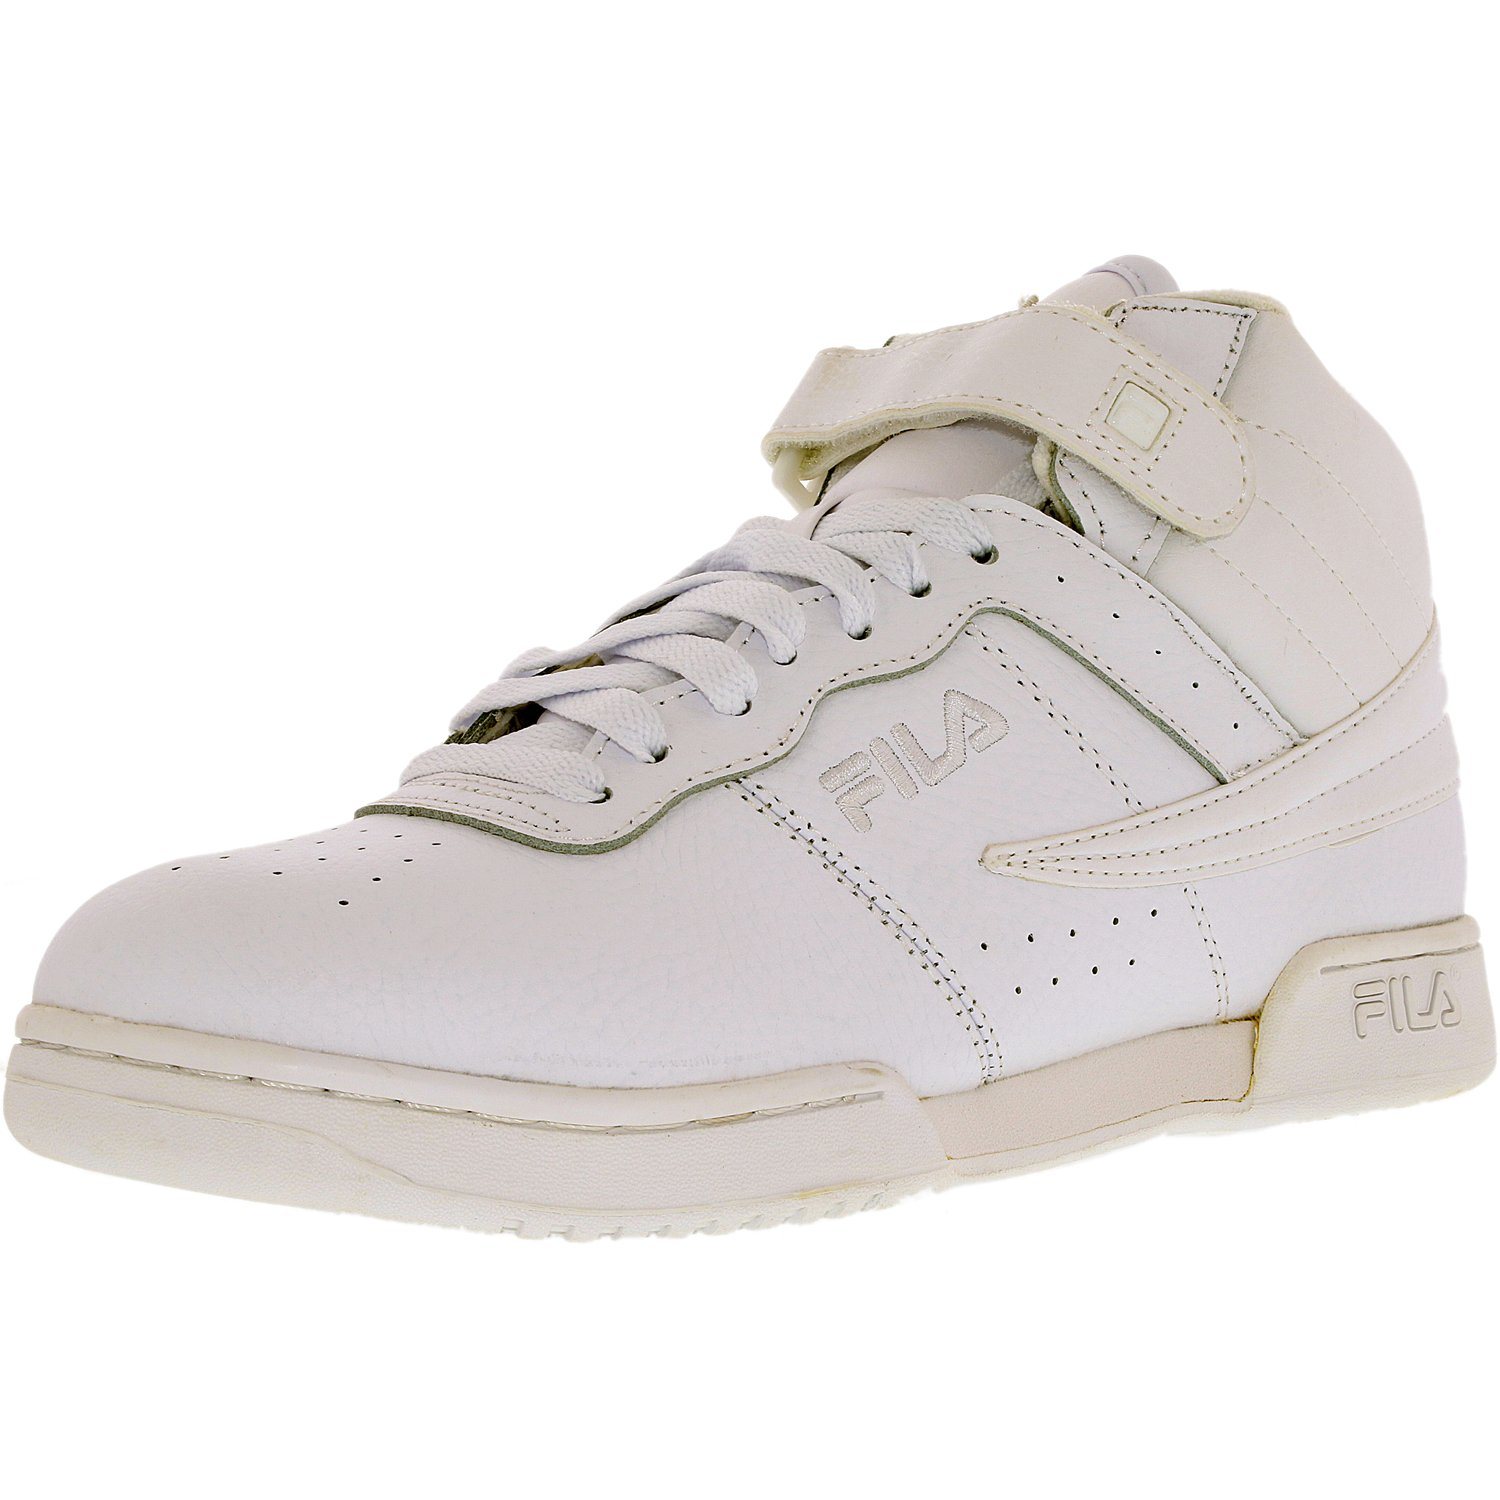 Fila Men's F-13V Leather Synthetic Triple White Ankle-High Leather Fashion Sneaker 10M by Fila